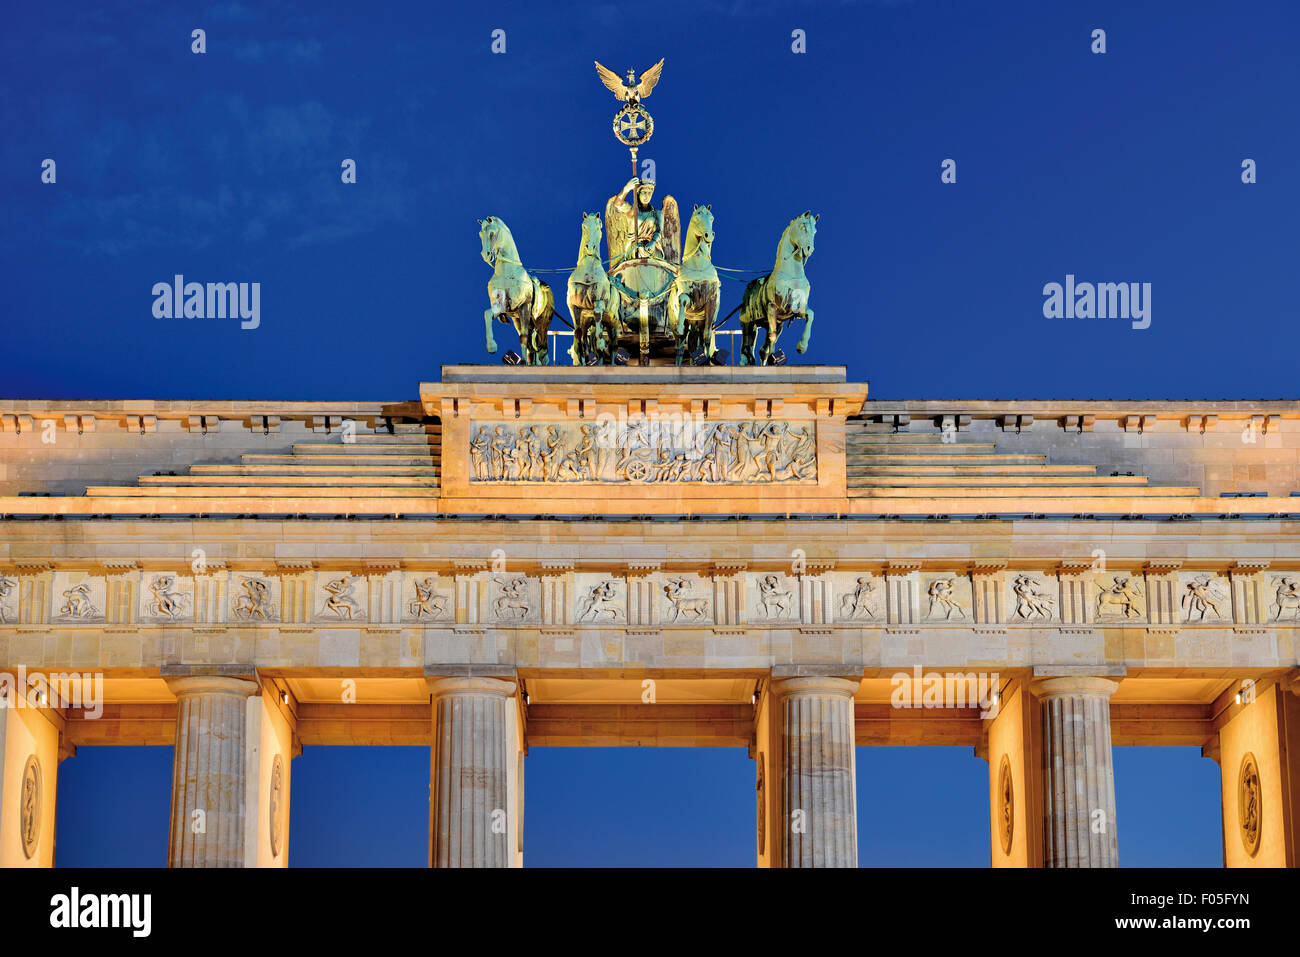 Germany, Berlin: Top of the Gate of Brandenburg by night - Stock Image